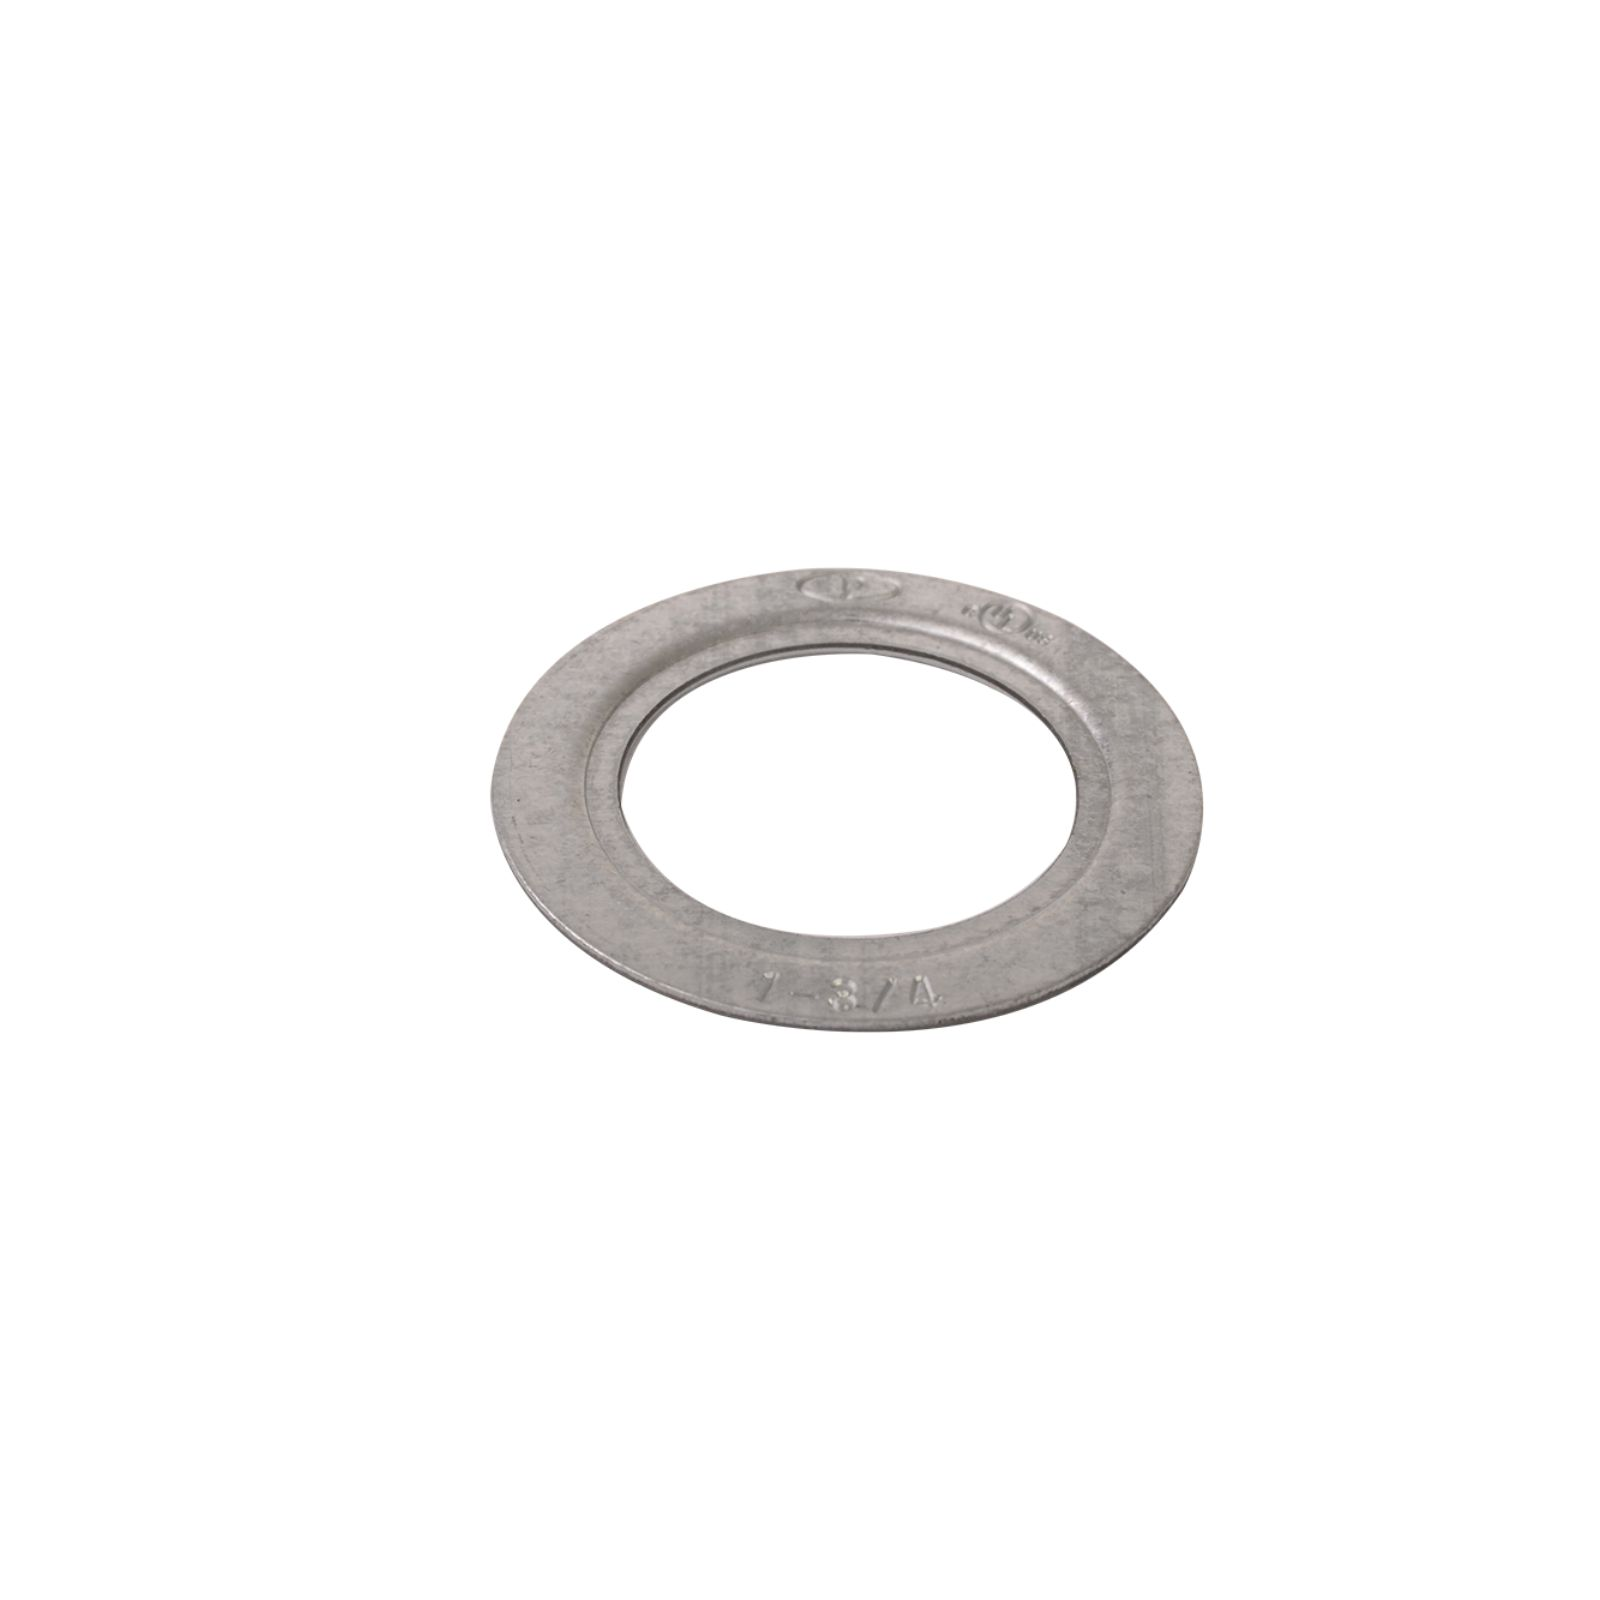 "DiversiTech PI305 - Reducing Washer - Reduces Hole From 1"" To 3/4"", Pack of 10"